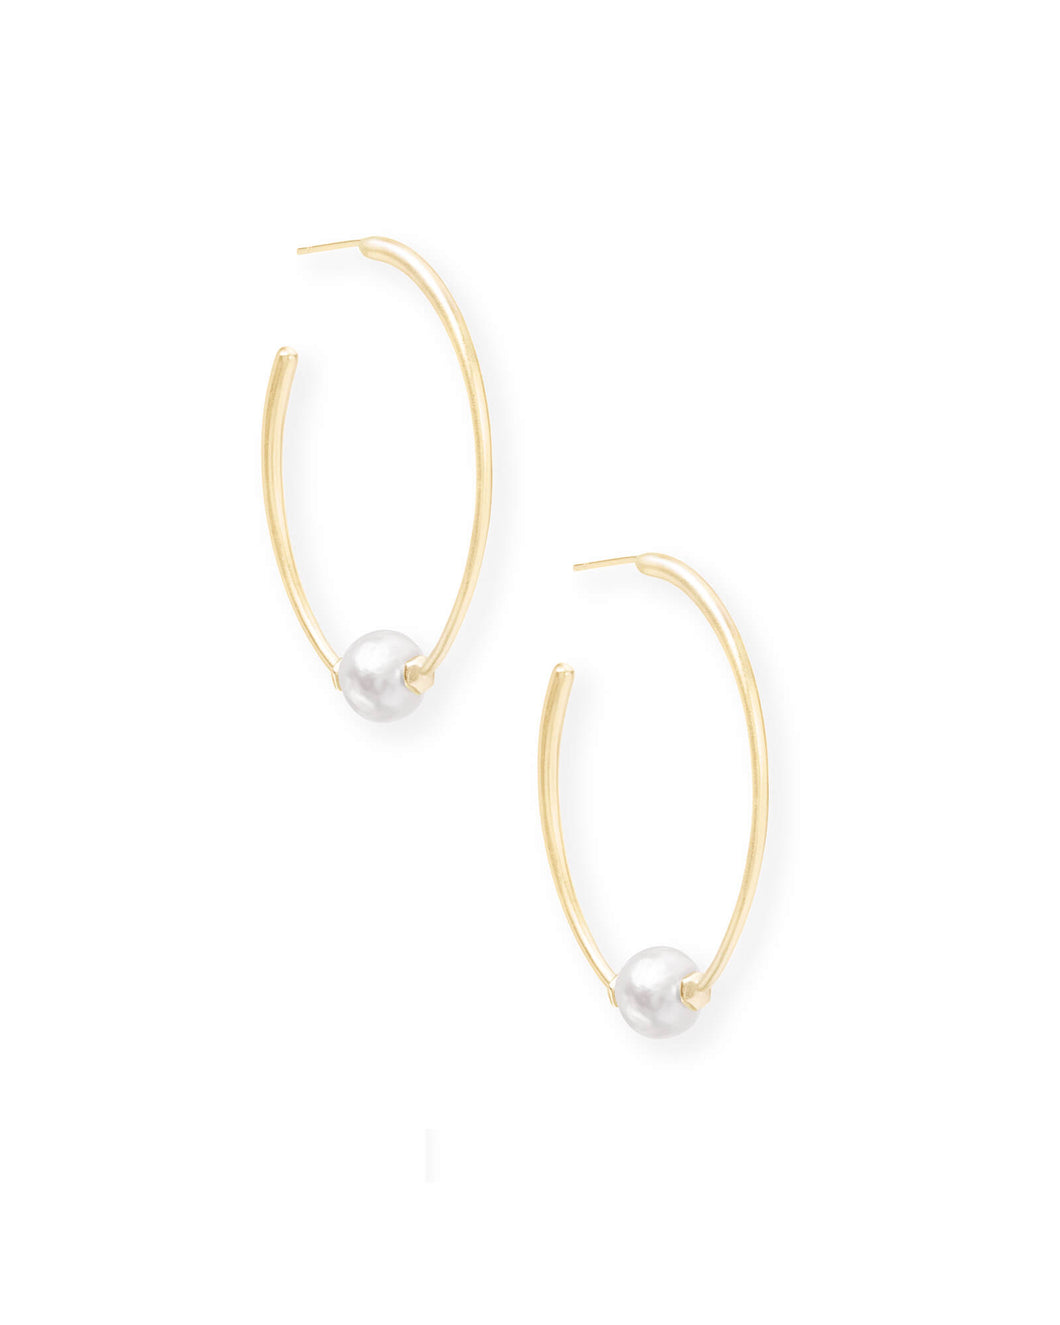 Regina Gold Hoop Earrings in Pearl